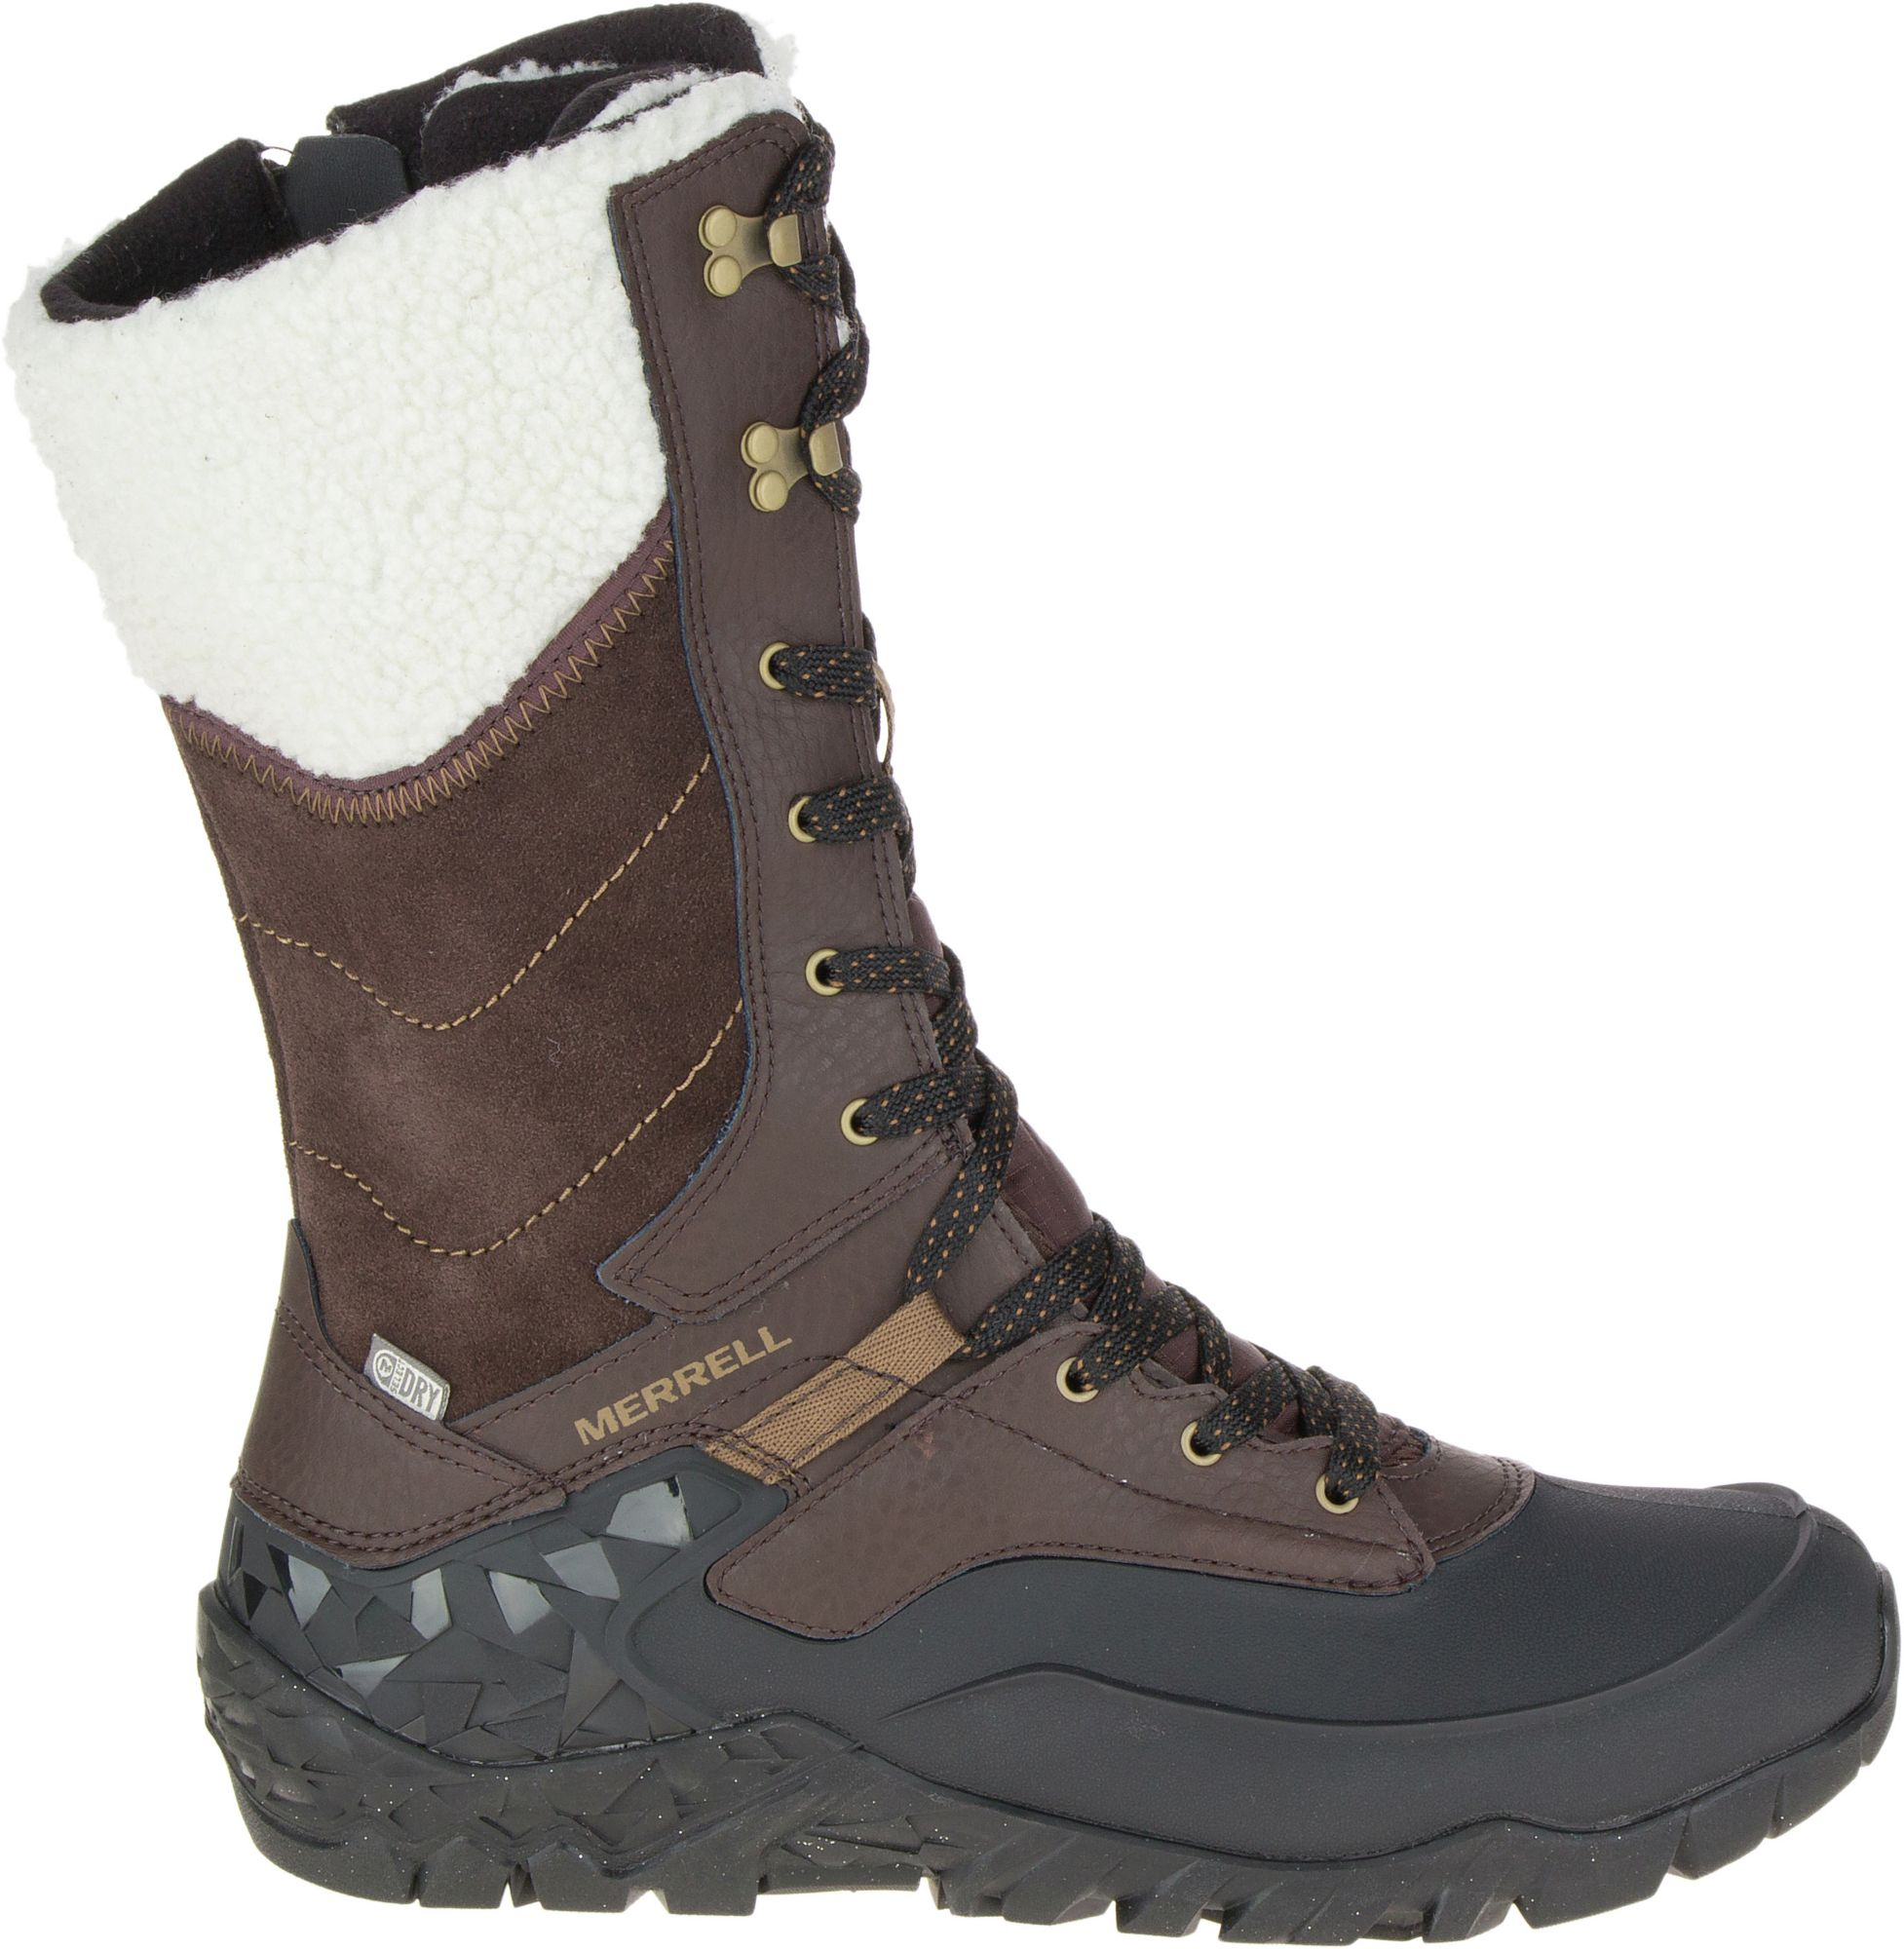 Merrell Women's Aurora Tall ICE+ 200g Waterproof Winter Boots | DICK'S  Sporting Goods